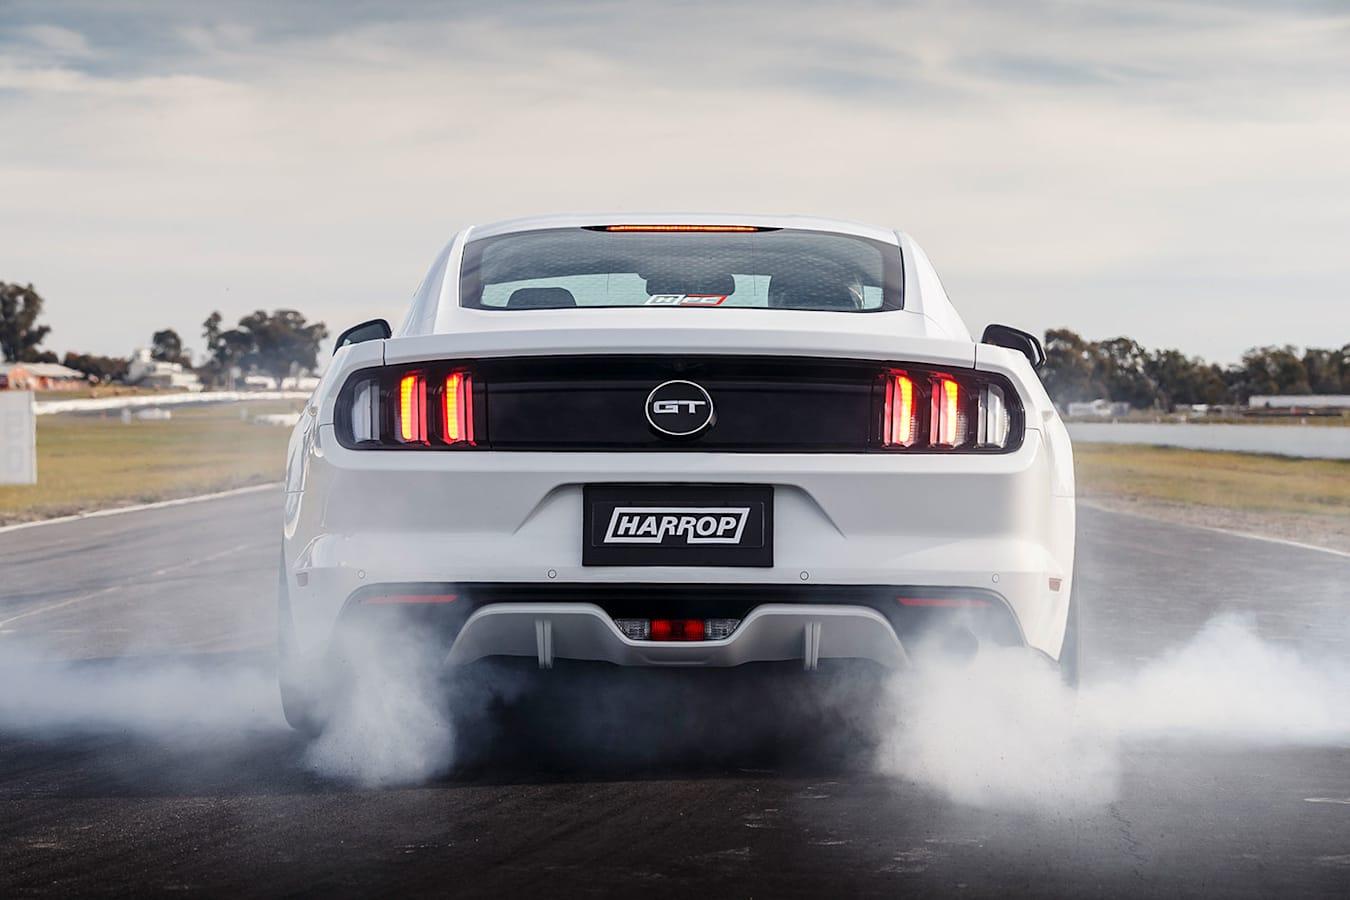 2017 Ford Mustang Harrop Supercharged Jpg